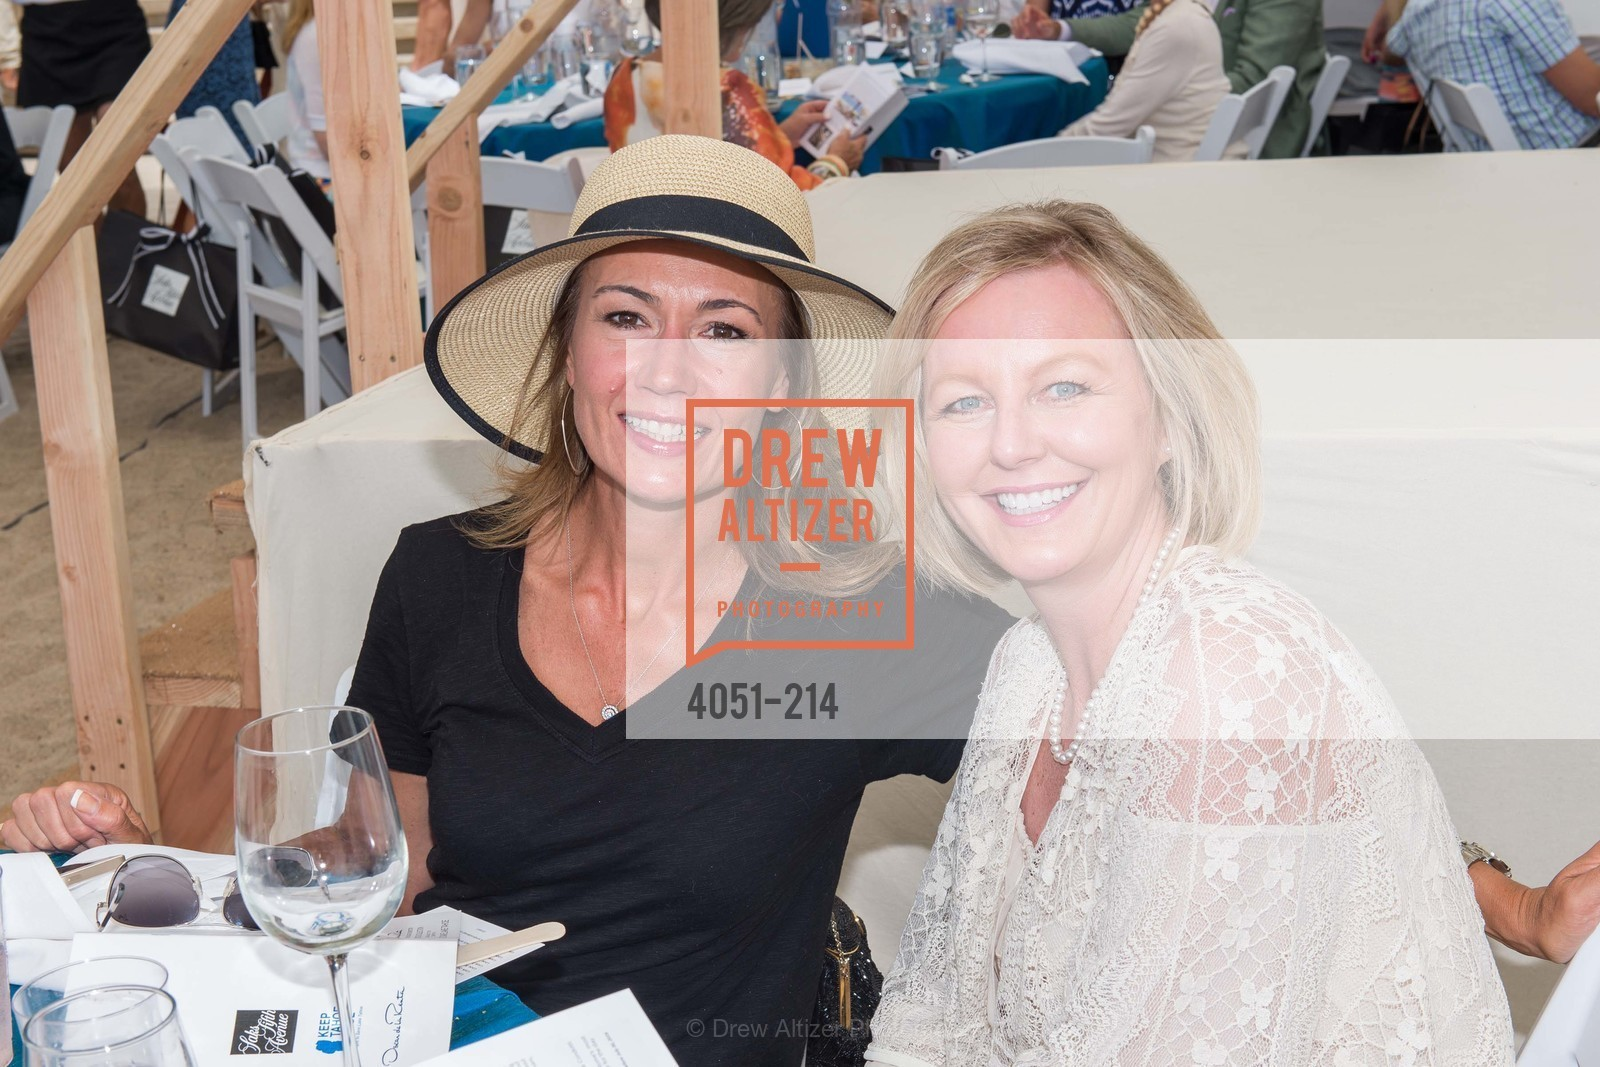 Karen Wirth, Stephanie VanDyke, Saks Fifth Avenue and The League to Save Lake Tahoe Present Fashion on the Lake, Private Residence, August 1st, 2015,Drew Altizer, Drew Altizer Photography, full-service agency, private events, San Francisco photographer, photographer california